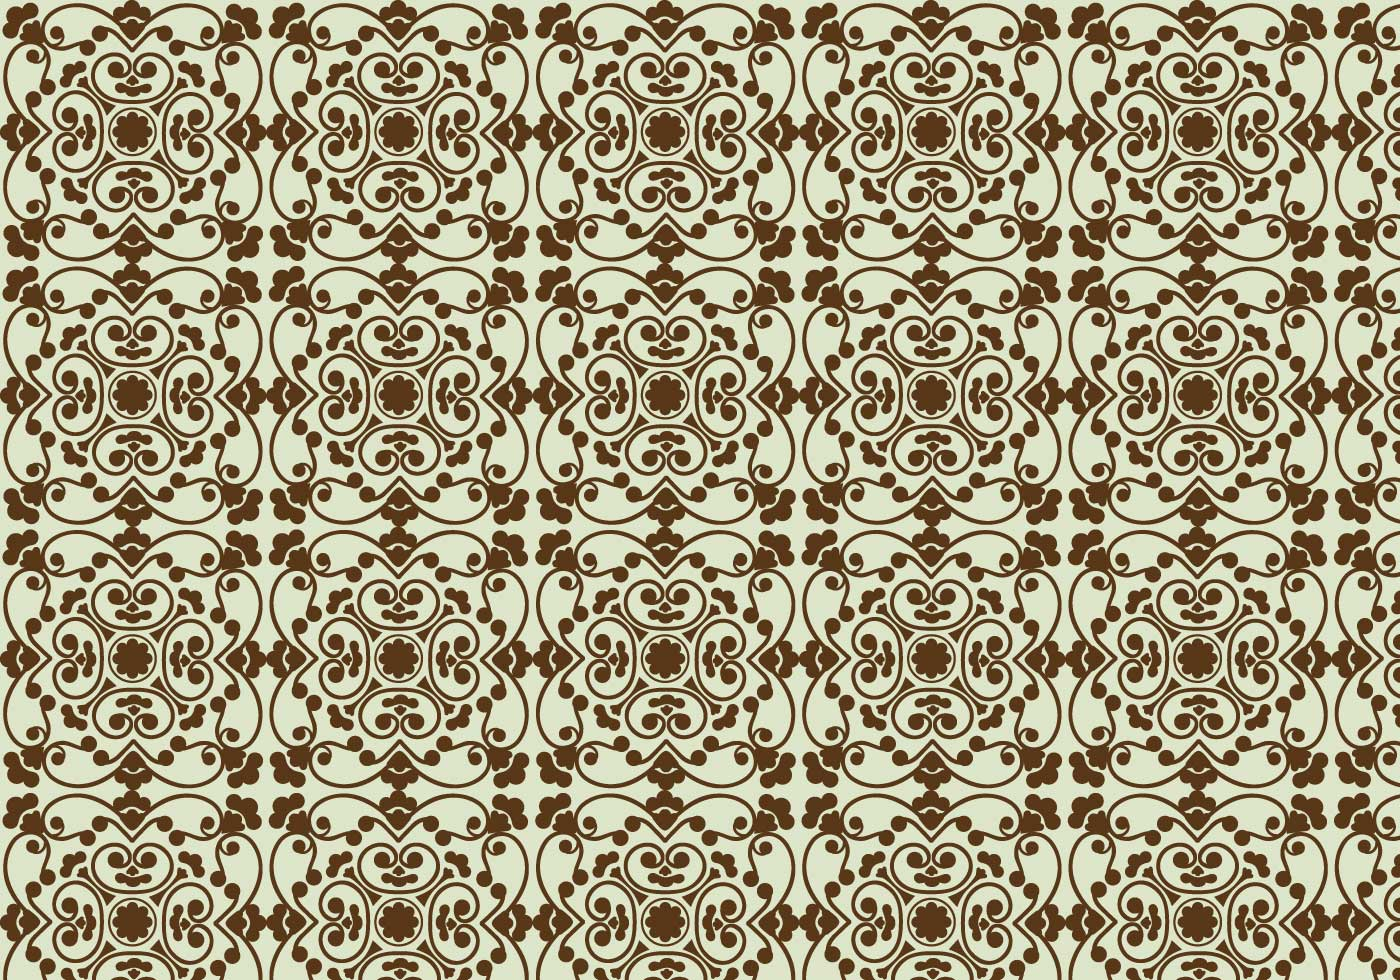 Traditional Chinese Pattern - Download Free Vector Art